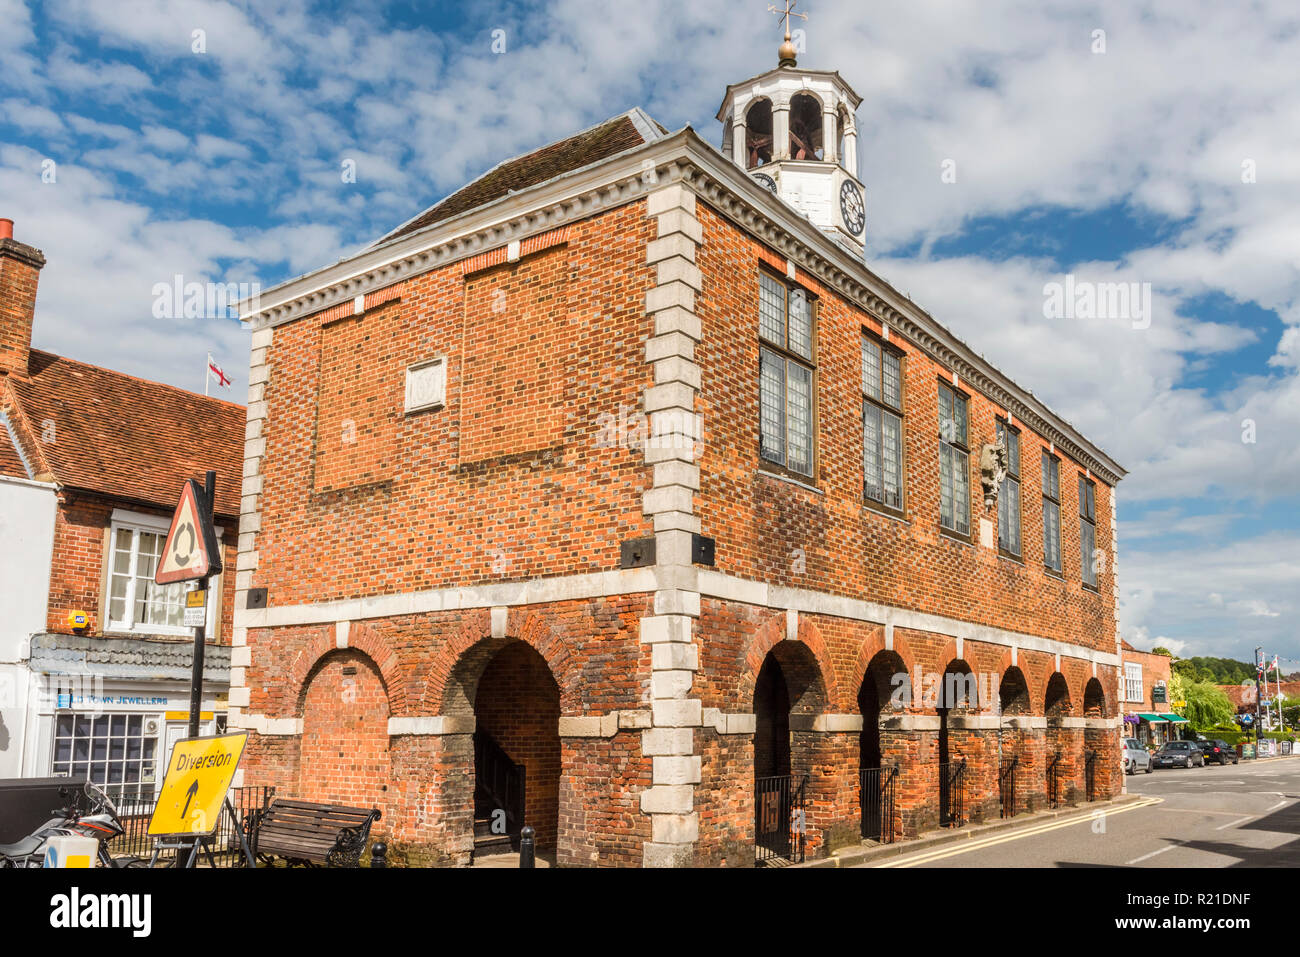 Old Amersham Market Hall, Amersham, Buckinghamshire, England - Stock Image